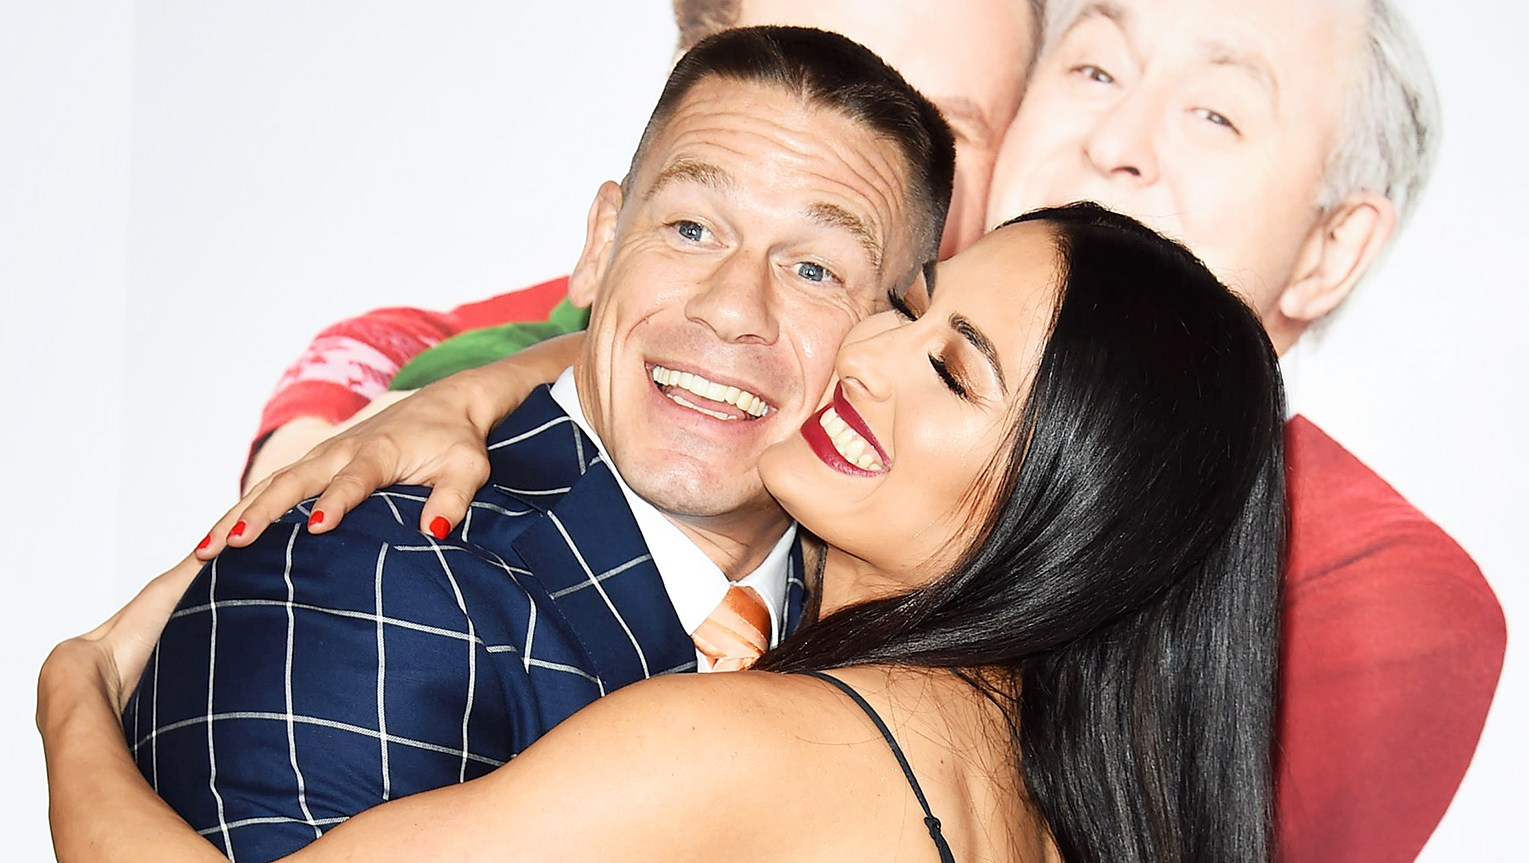 Hollywood's Broken Engagements John Cena Nikki Bella